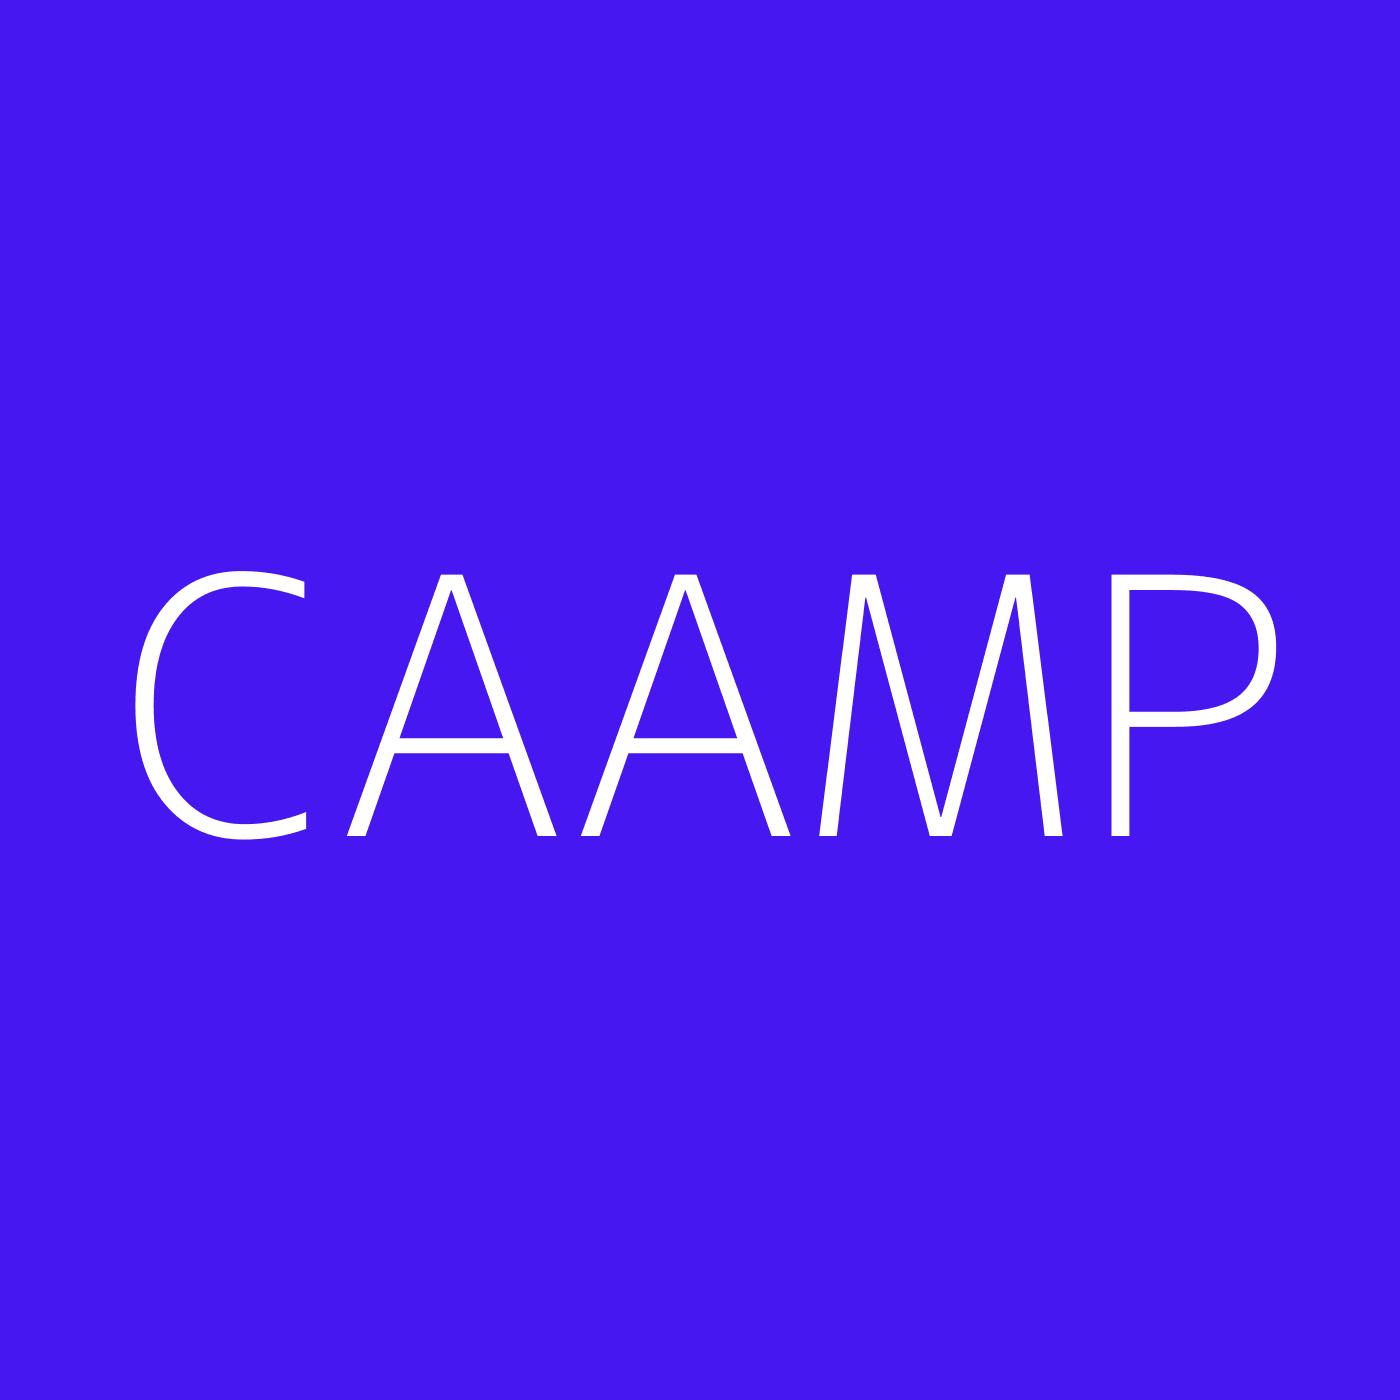 Caamp Playlist Artwork